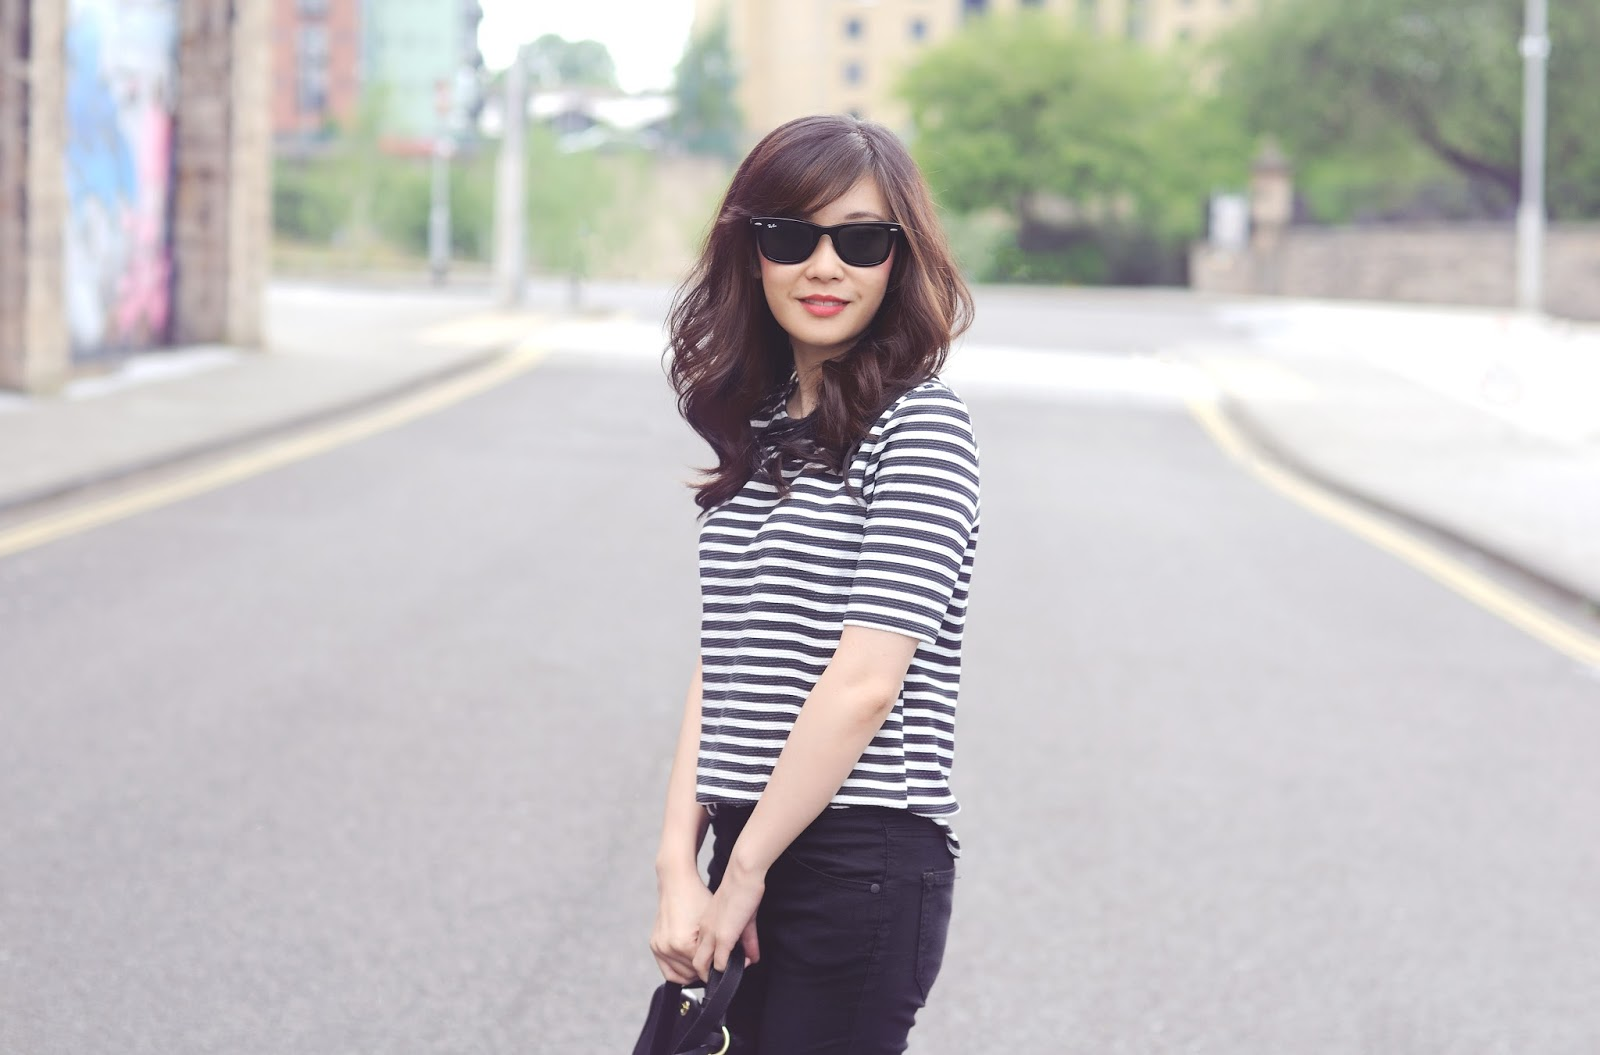 wearing monocrhome in summer, breton striped top